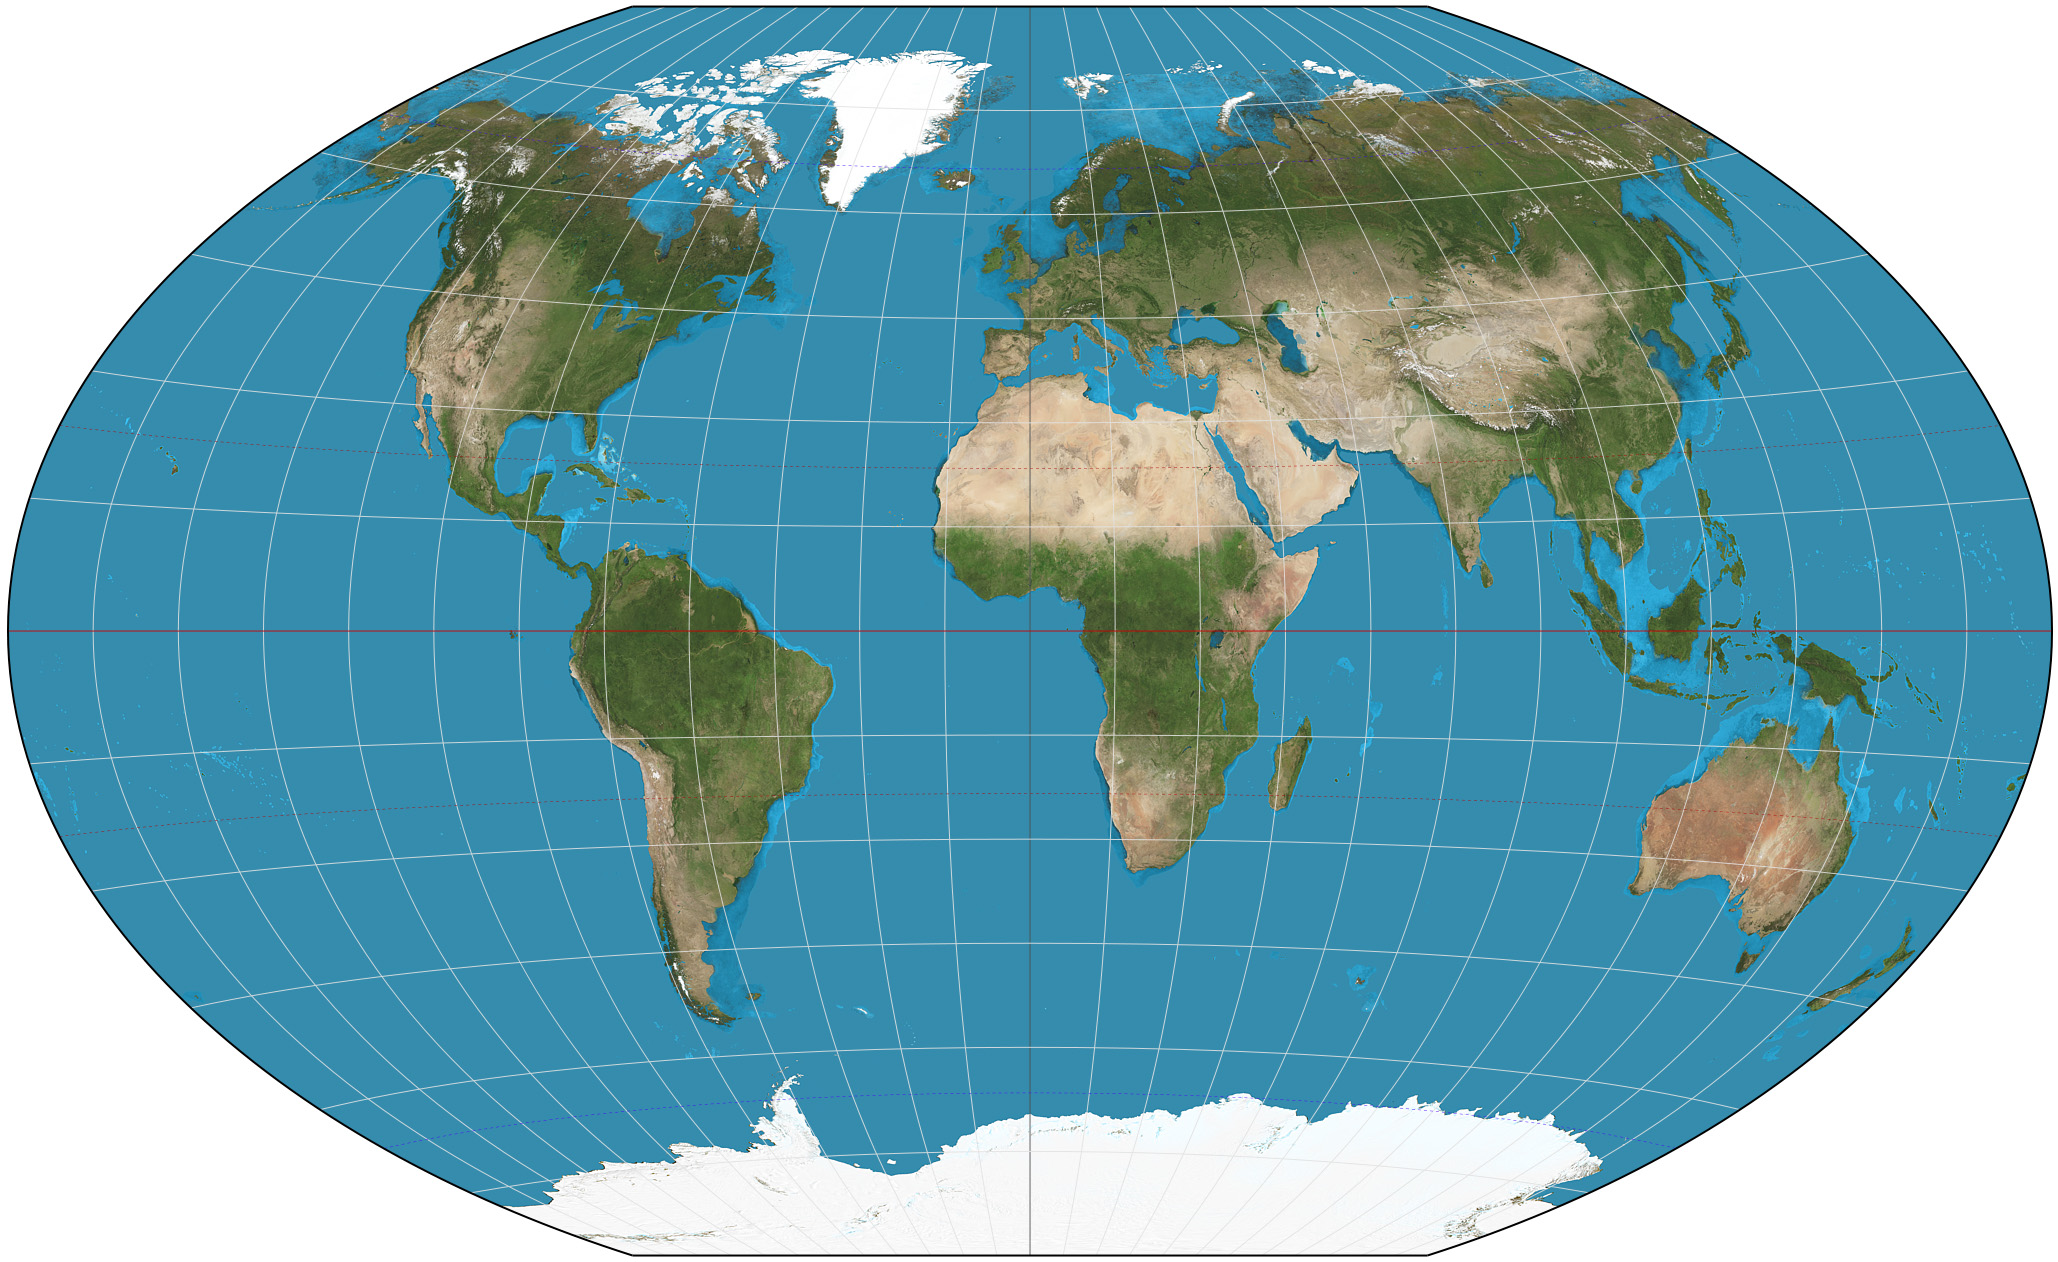 World map wikipedia a world map on the winkel tripel projection a low error map projection adopted by the national geographic society for reference maps gumiabroncs Image collections